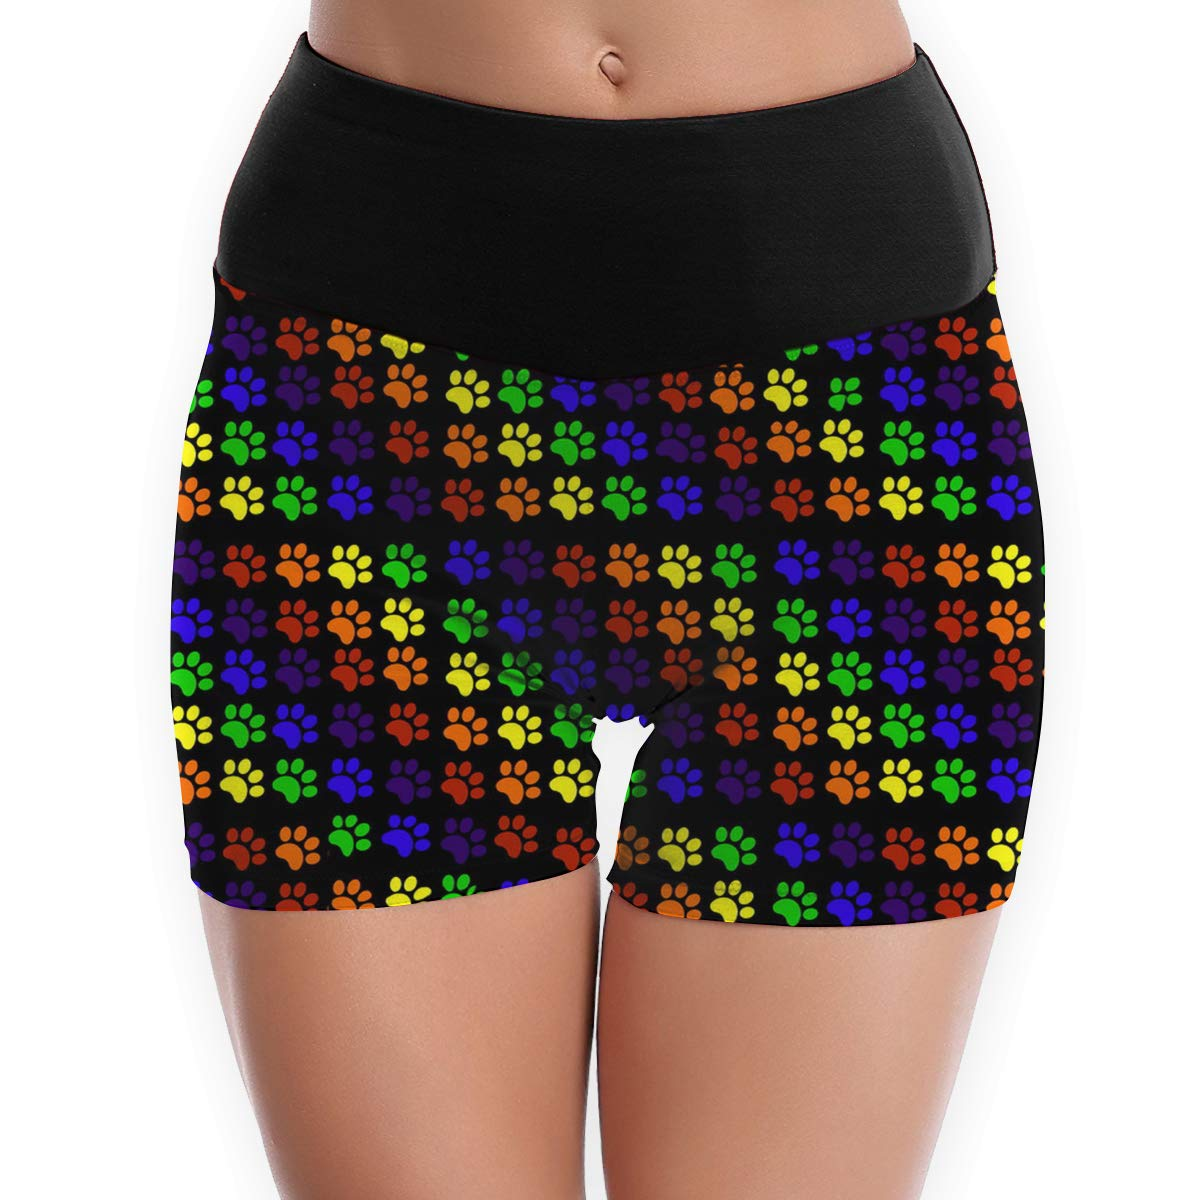 Amazon.com : YJK79R Paws to Reflect Pattern Womens Yoga ...